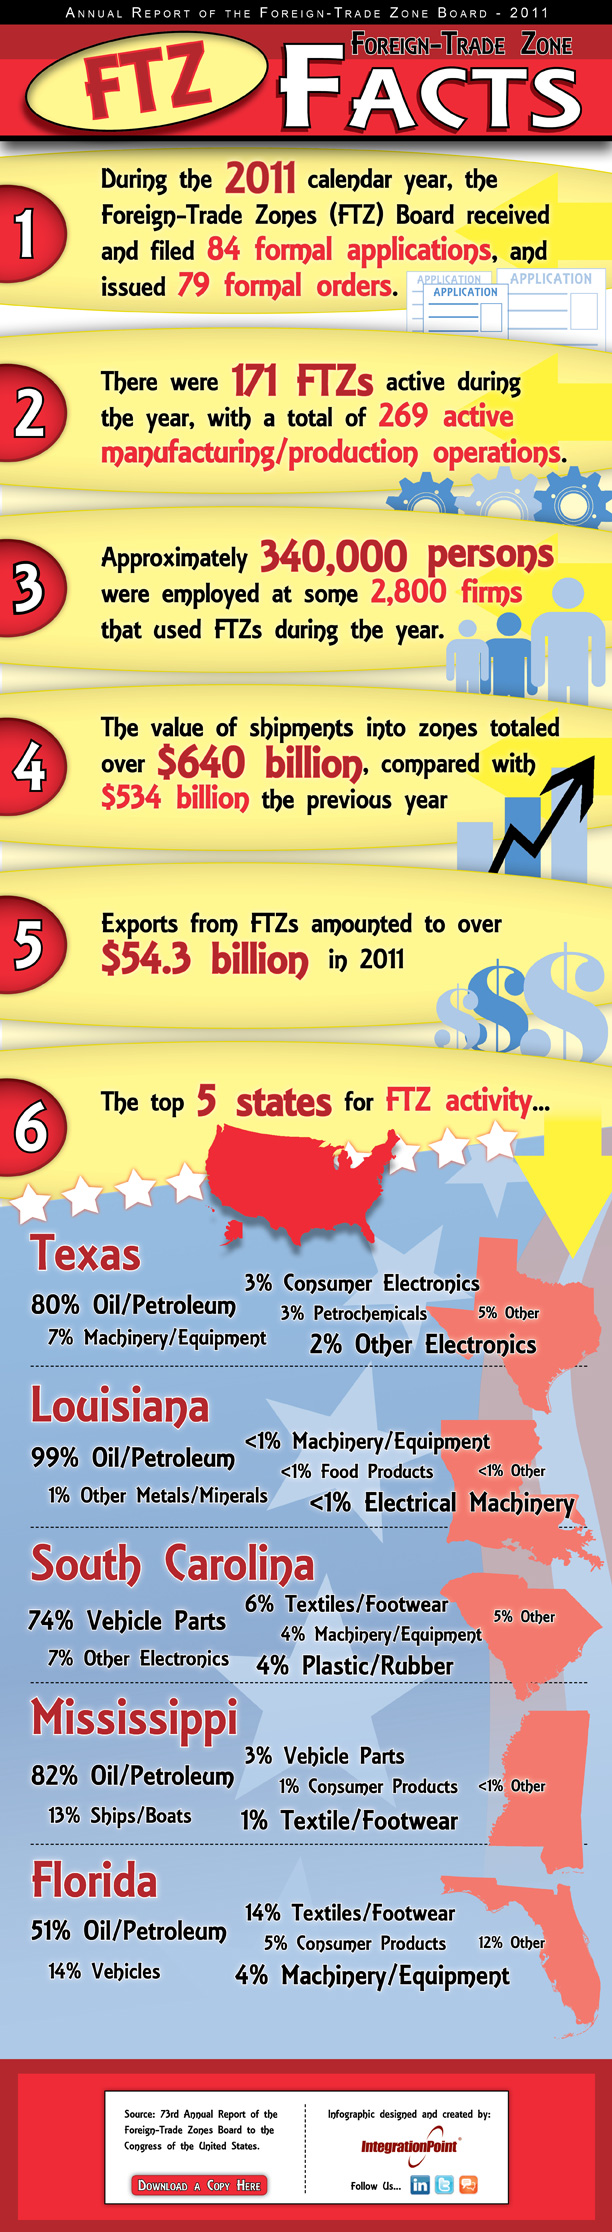 Infographic Of The Rd Annual Report Of The ForeignTrade Zones